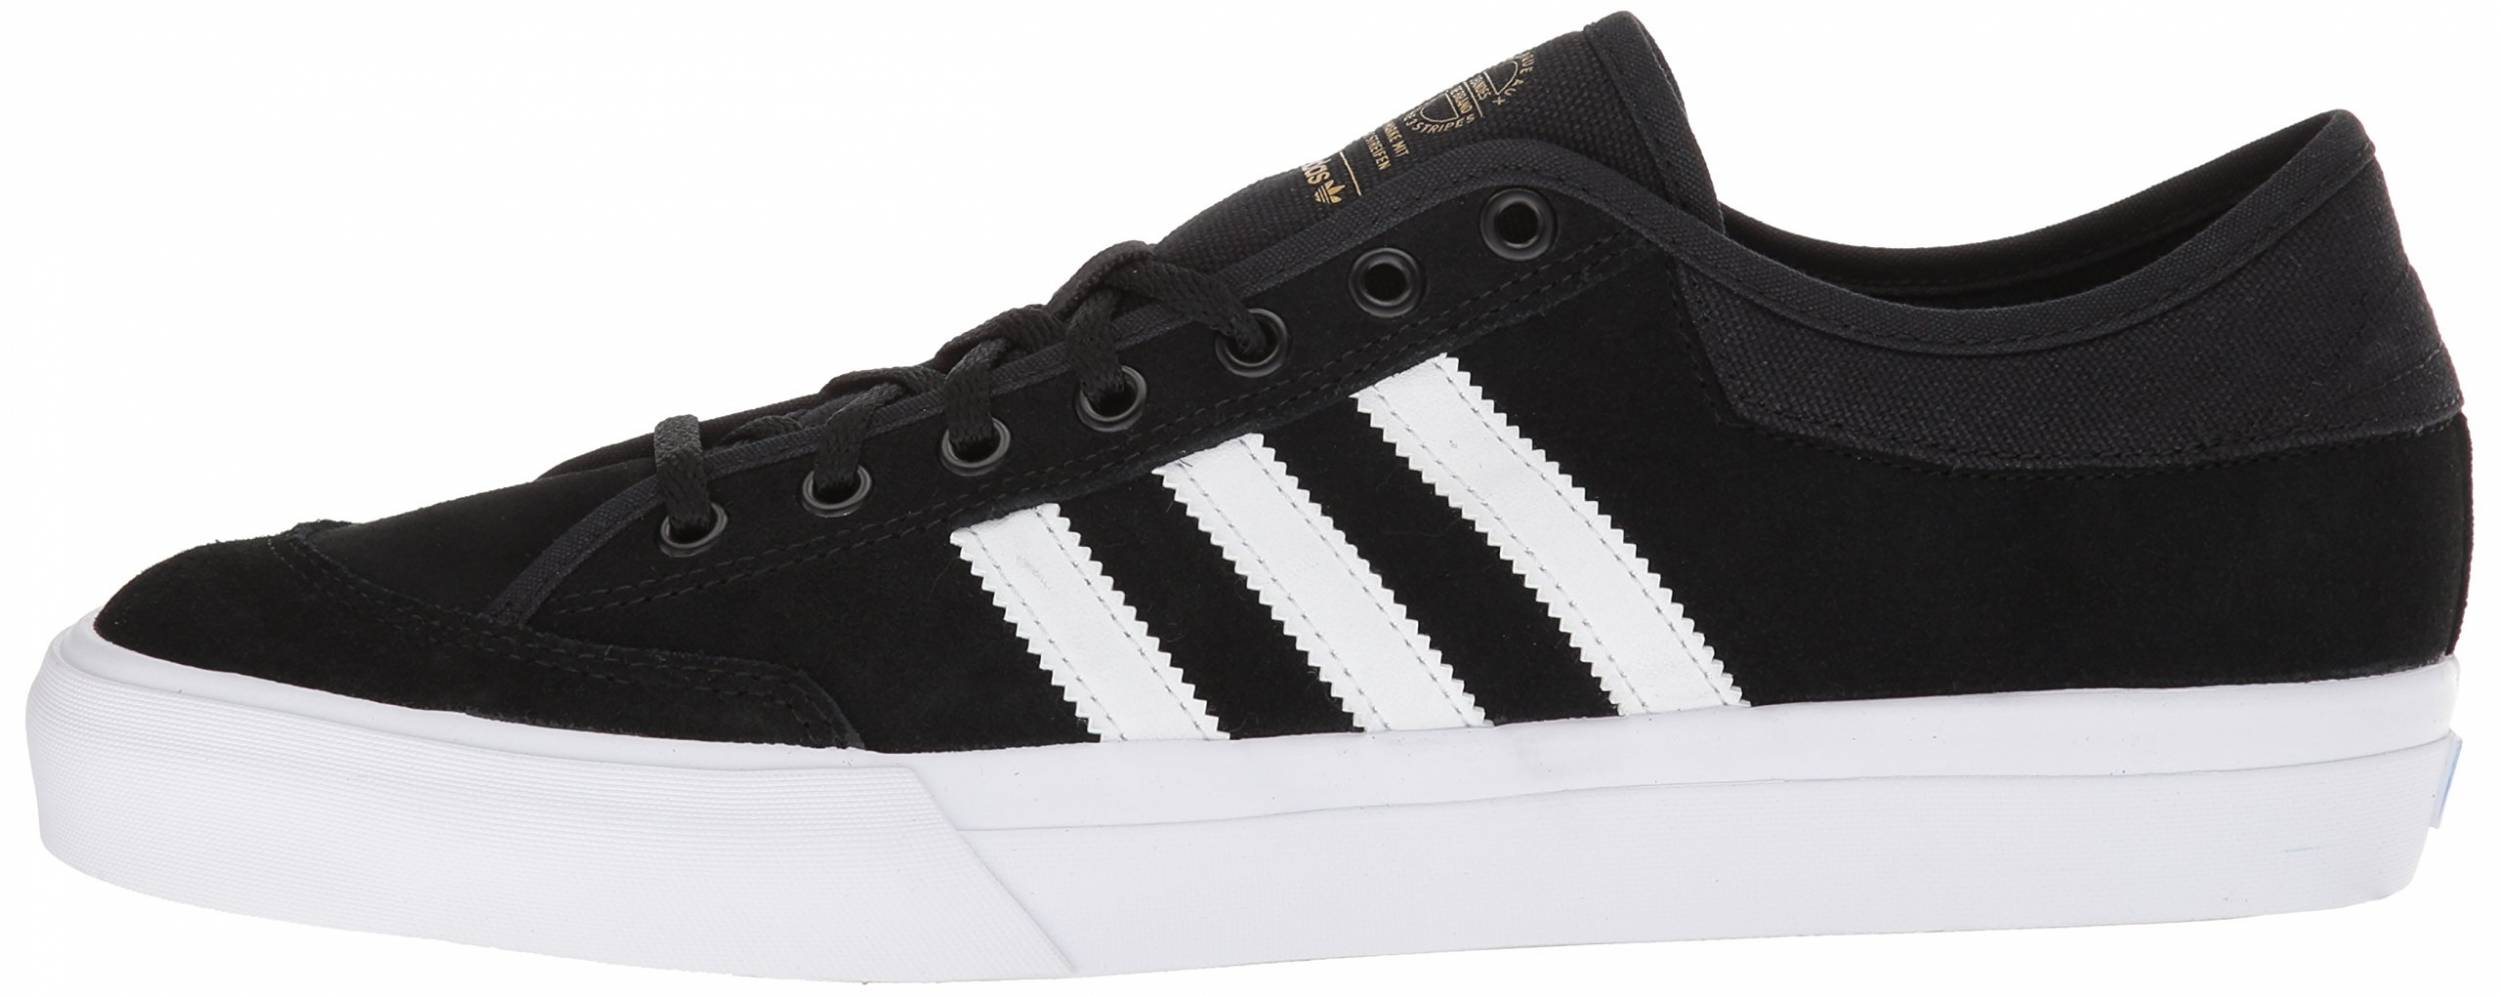 Only $28 + Review of Adidas Matchcourt